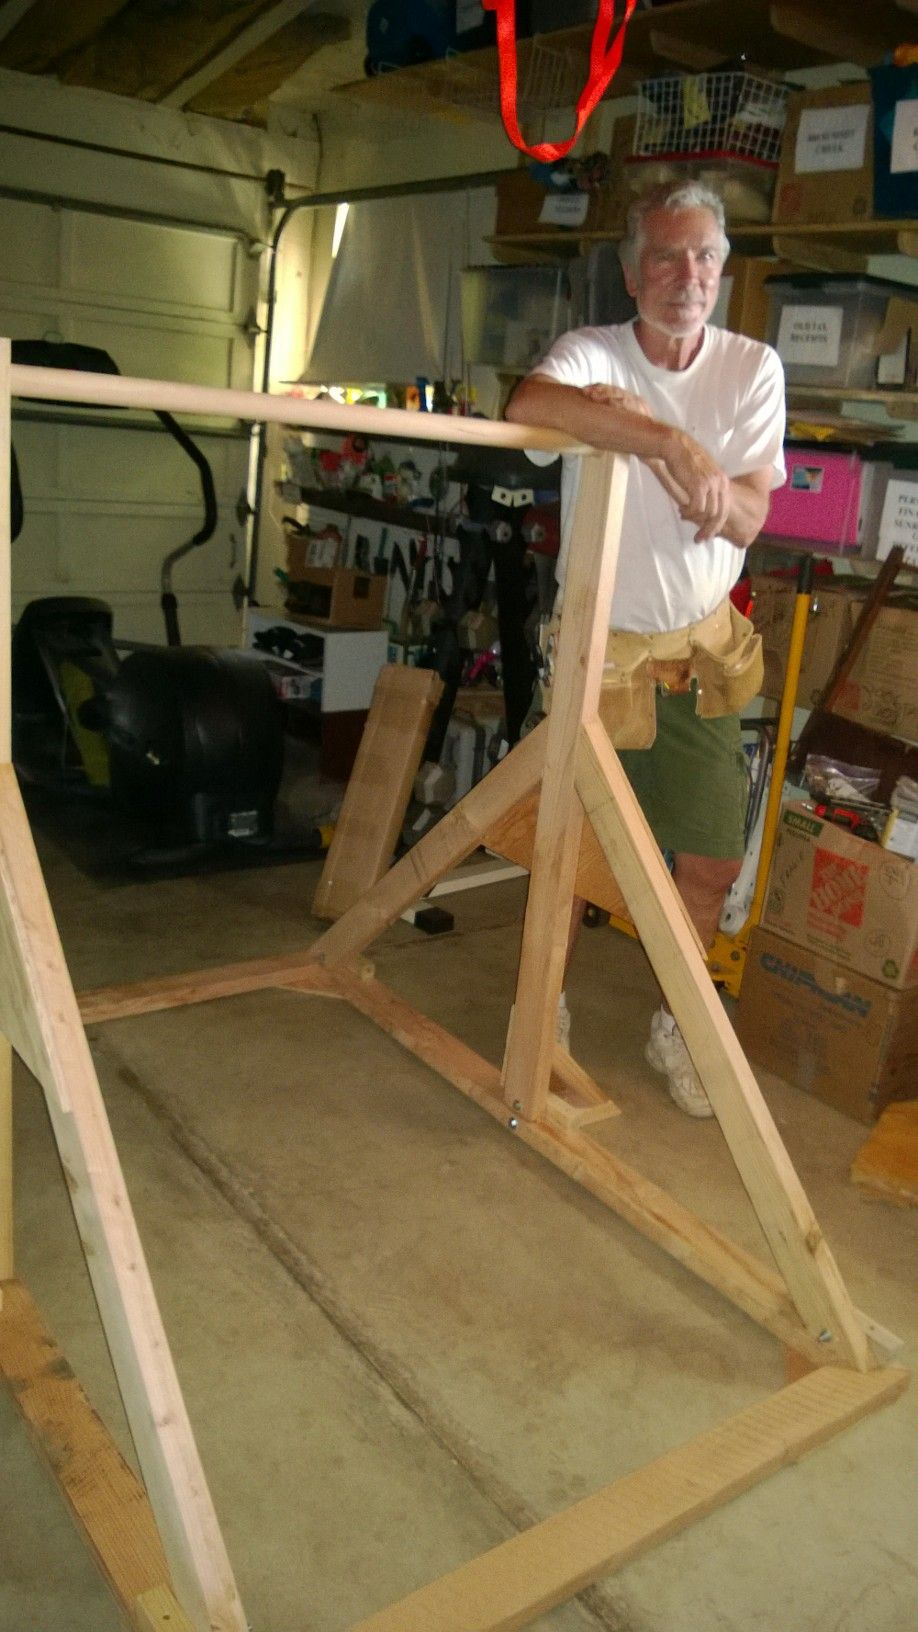 Homemade Gymnastics Bar Plans on homemade track bar, homemade gymnastic rings, homemade outdoor bar, homemade parkour bar, homemade piano bar, homemade weight lifting bar, homemade bar dimensions, homemade trap bar, homemade sports bar, homemade pull bar,